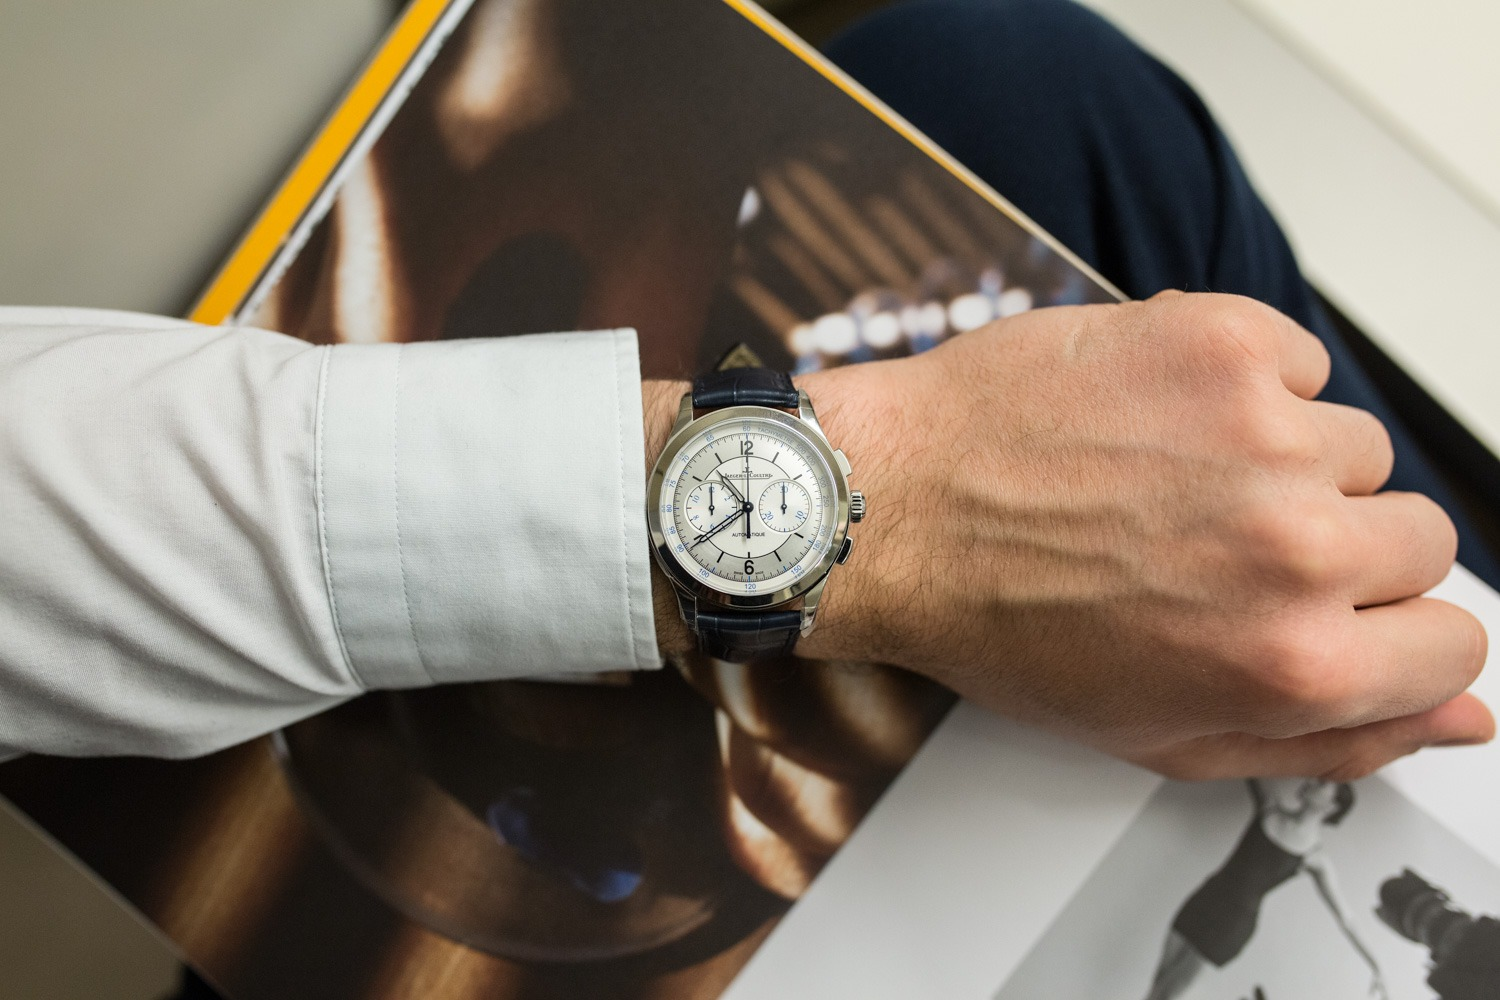 SIHH 2017 - Jaeger-LeCoultre Master Control Chronograph